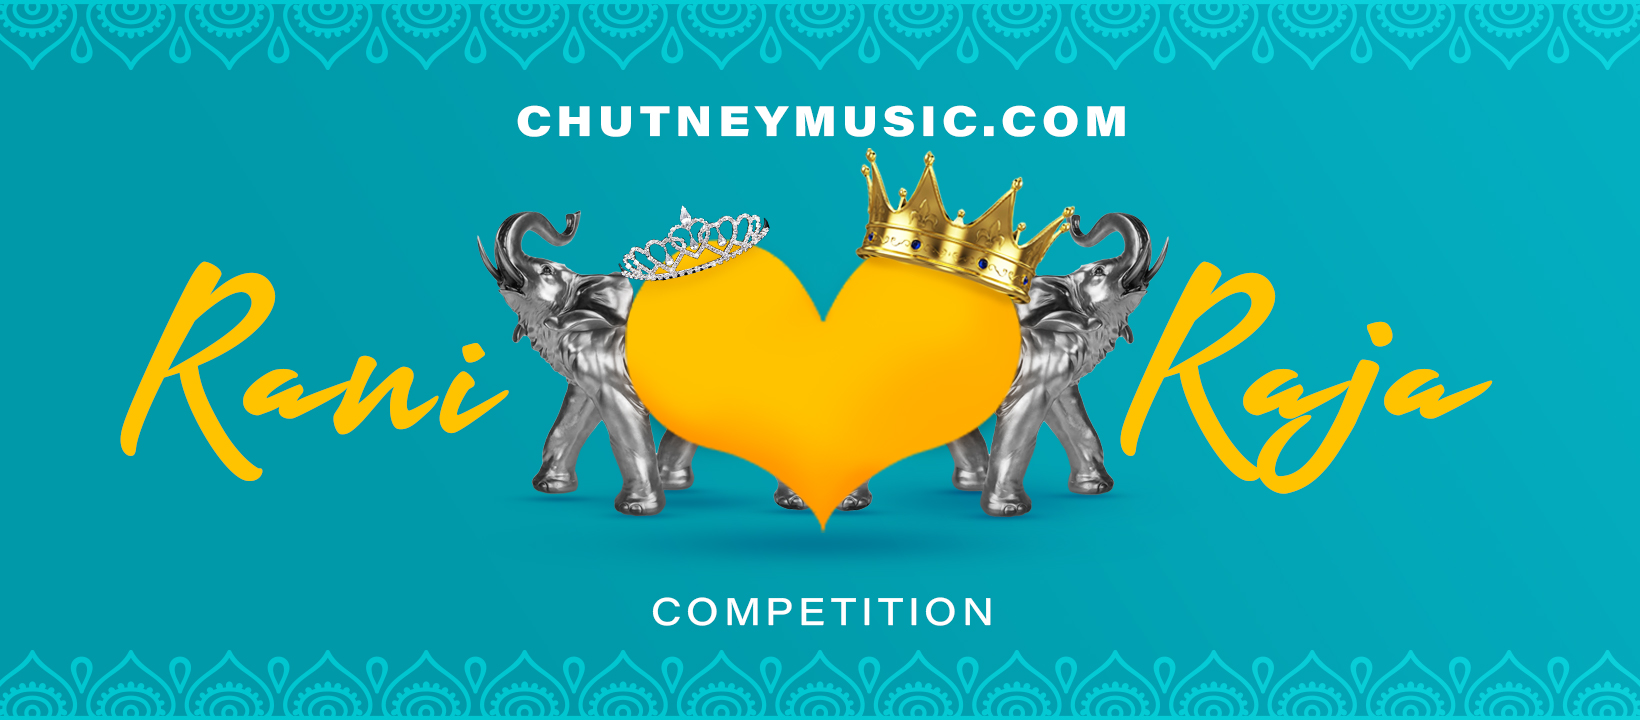 Chutneymusic.com Rani & Raja Competition